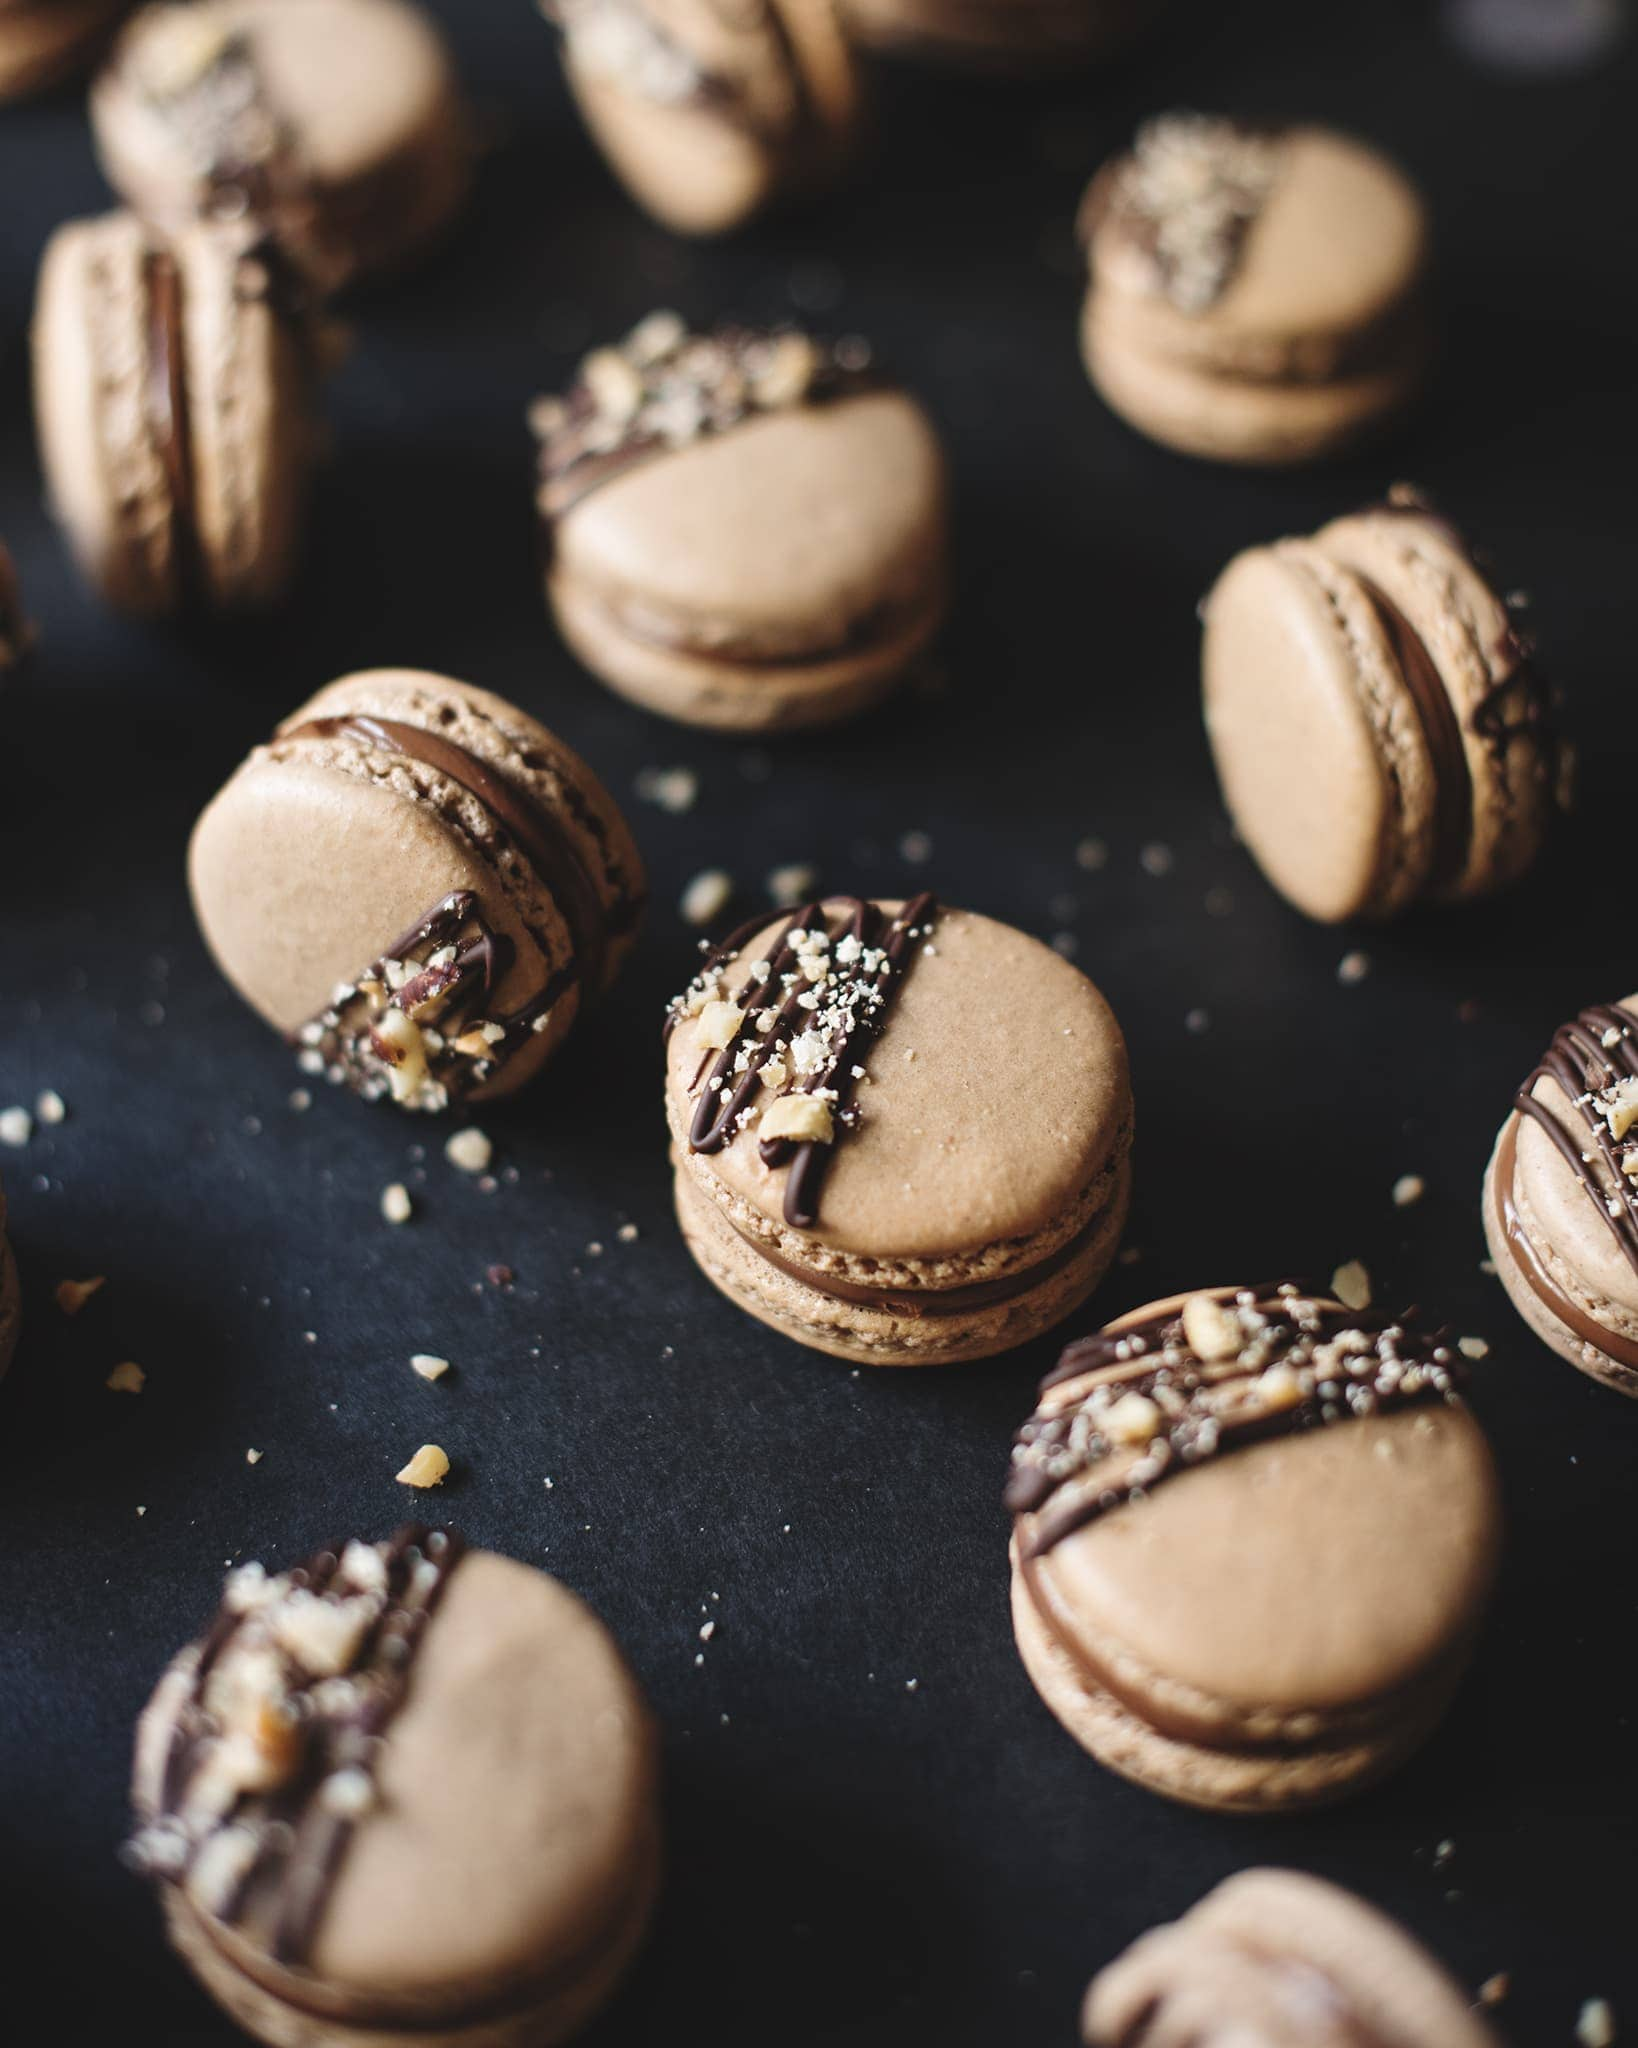 Ferrero Rocher macarons topped with dark chocolate drizzle and crushed hazelnuts scattered on a black background